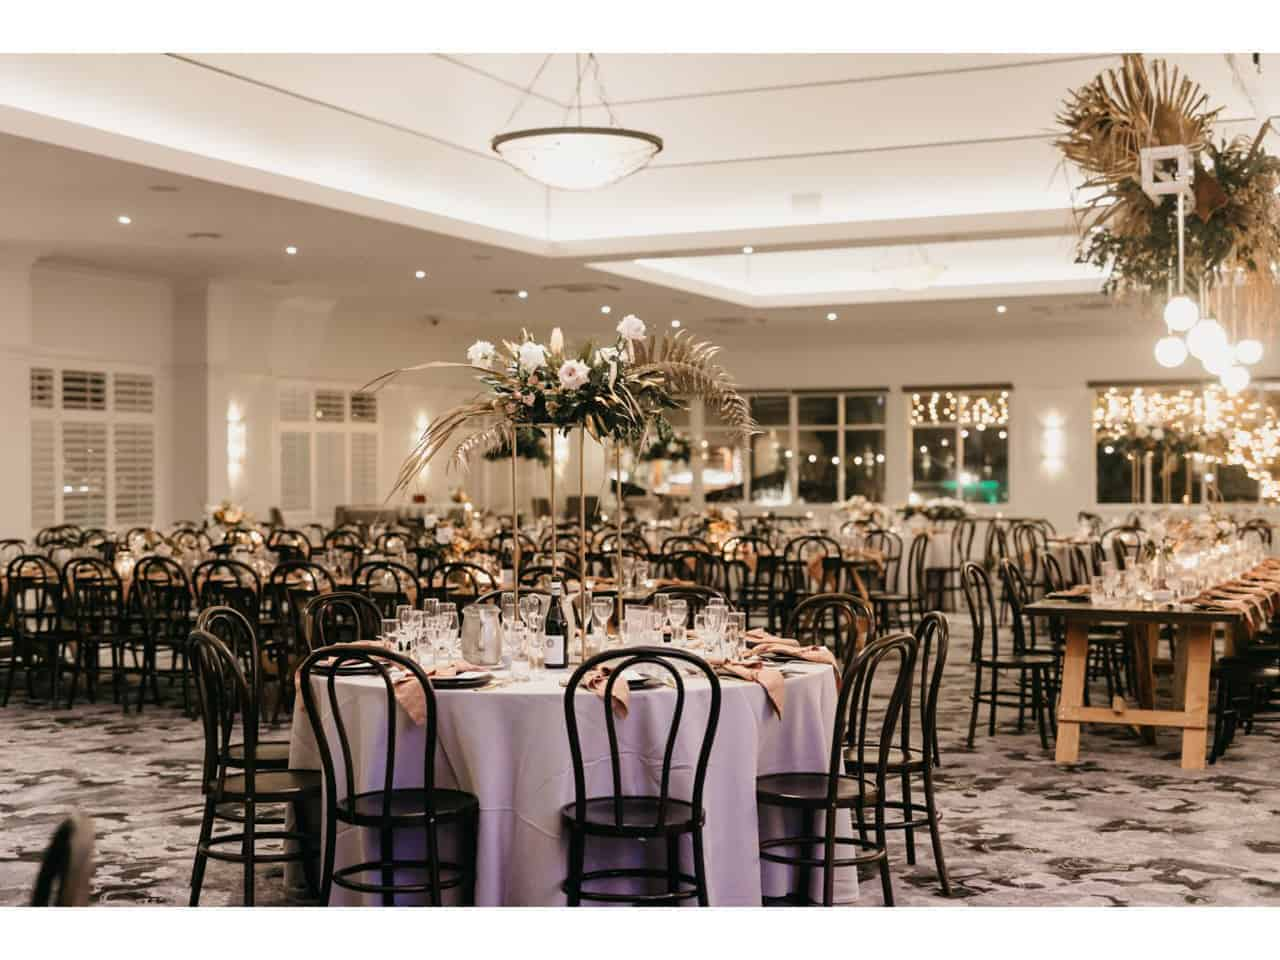 Large boho-inspired venue